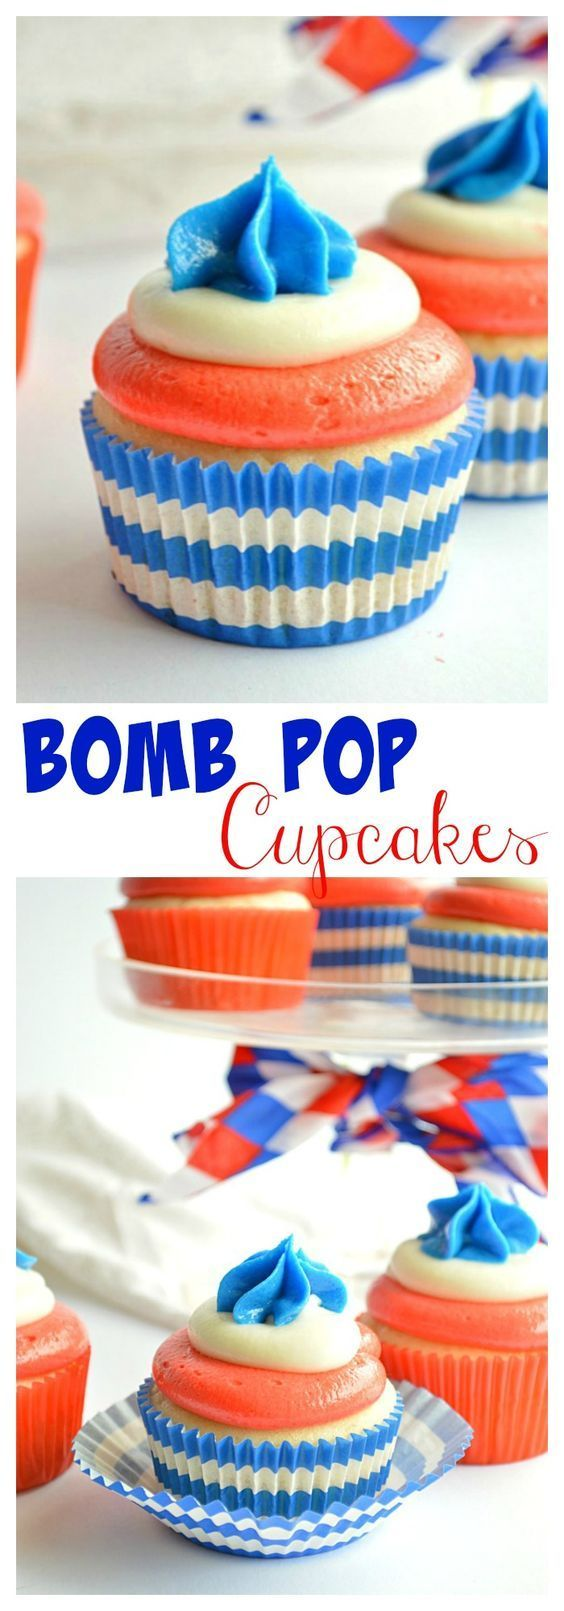 Bomb Pop Cupcakes - made with all the flavors of the classic popsicle! Blue Raspberry, White Lemon, and Cherry! A fun dessert for Memorial Day, 4th of July, or Labor Day! | http://houseofyumm.com for http://cupcakesandkalechips.com